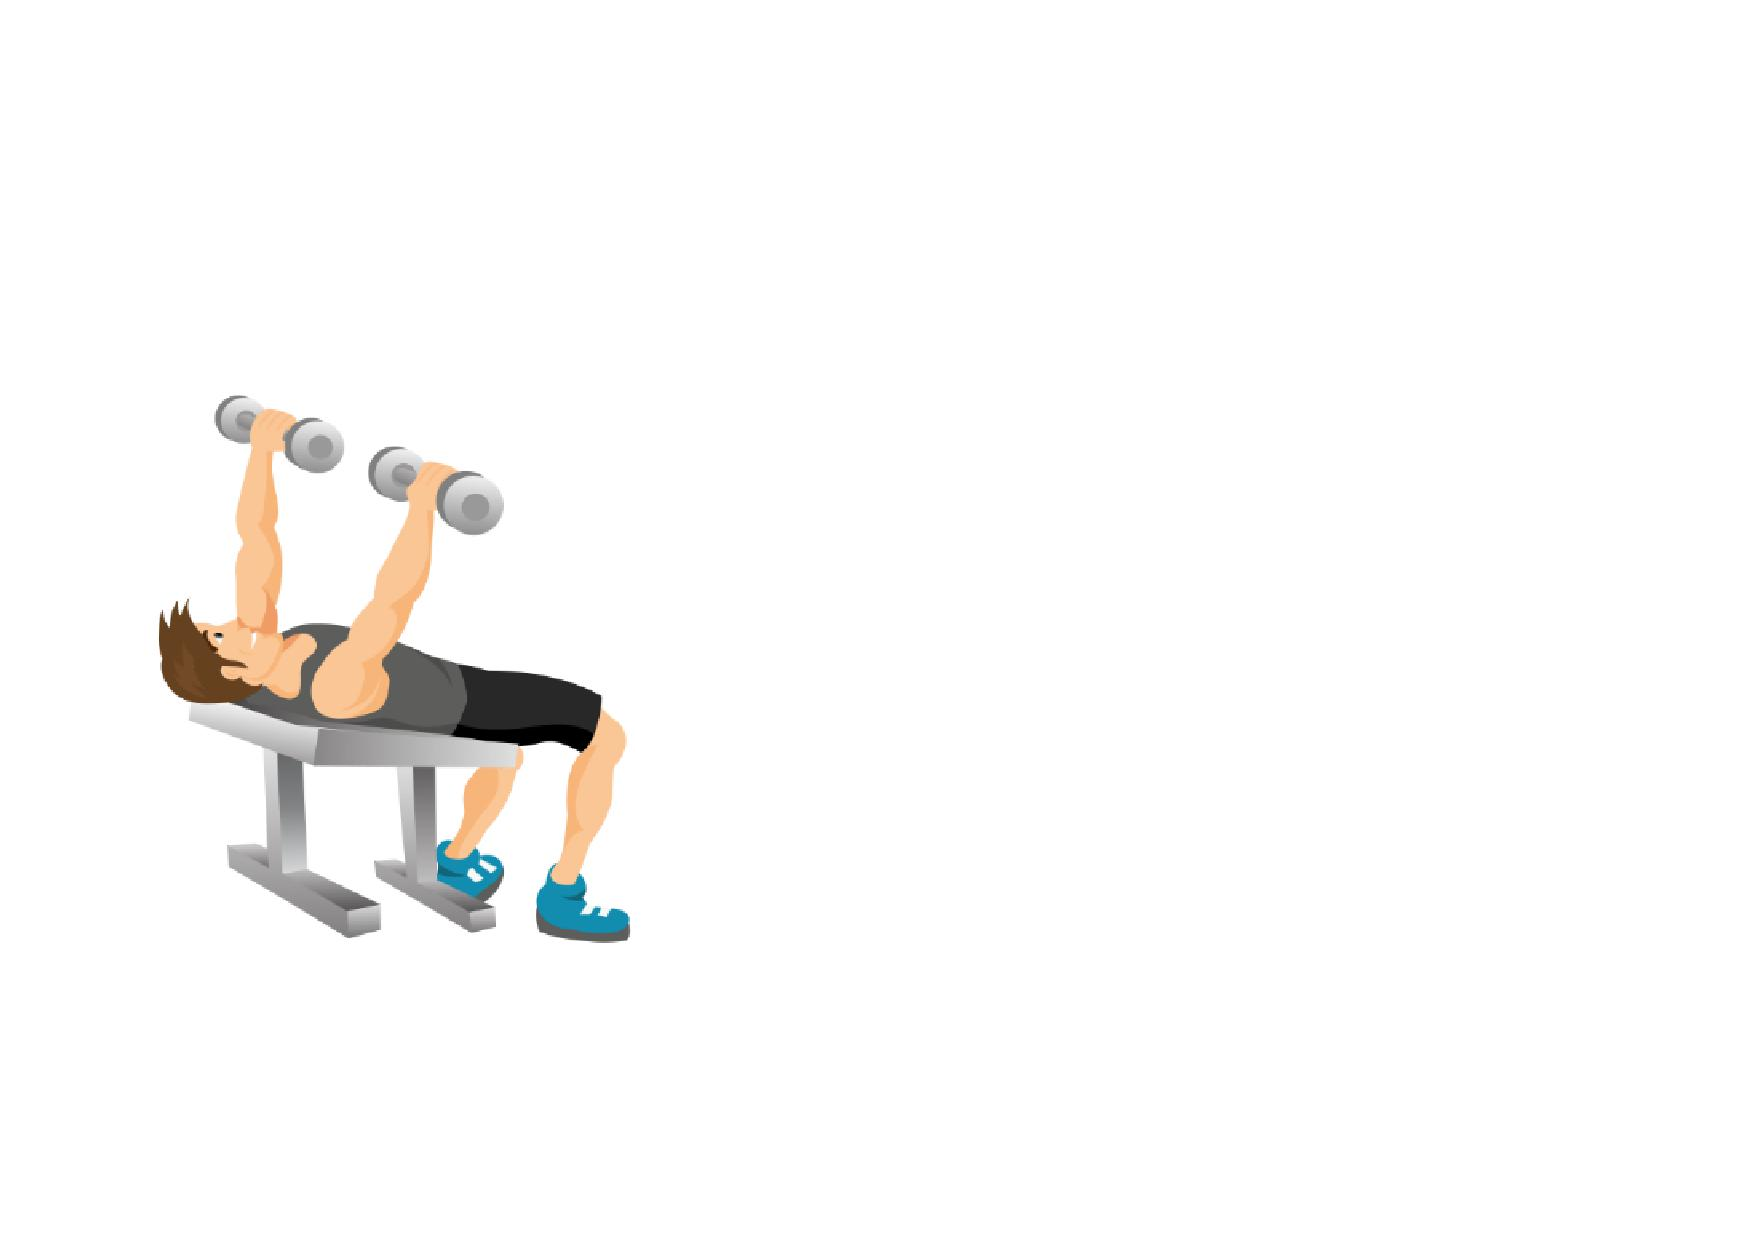 Gym fitness full page. Dumbbell clipart arm workout